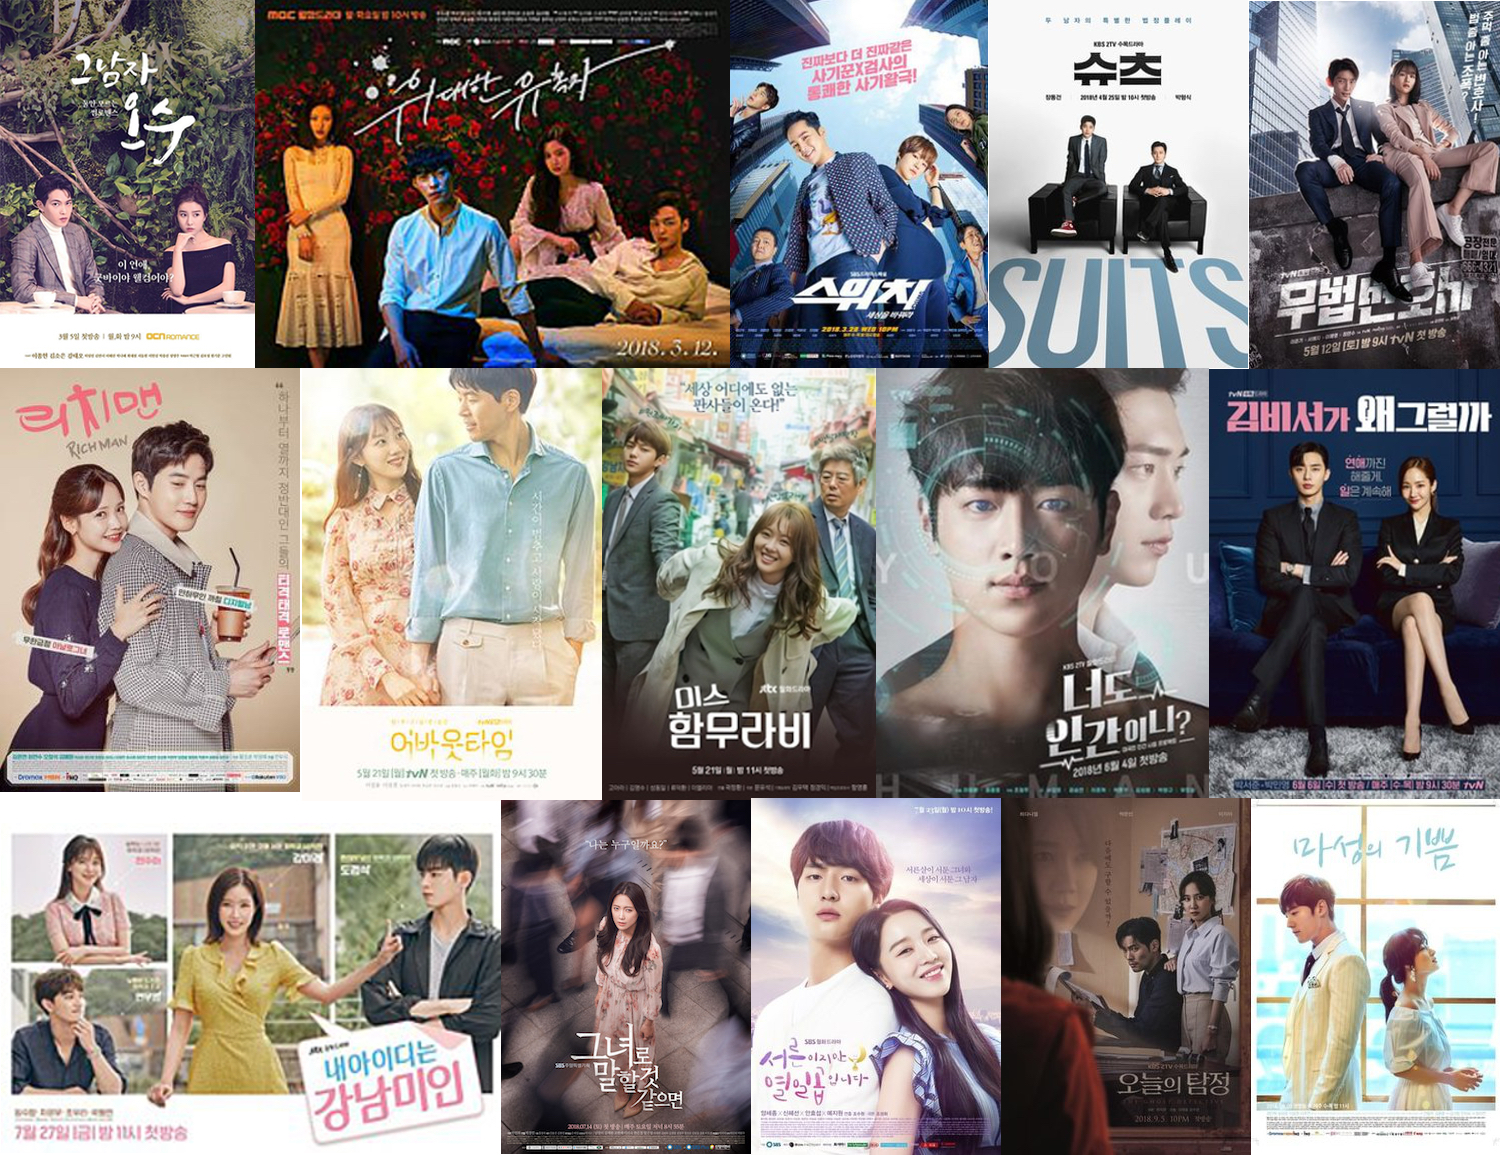 Korean Dramas You Need To Be Watching in 2018 - I am Ulyssa Elaine